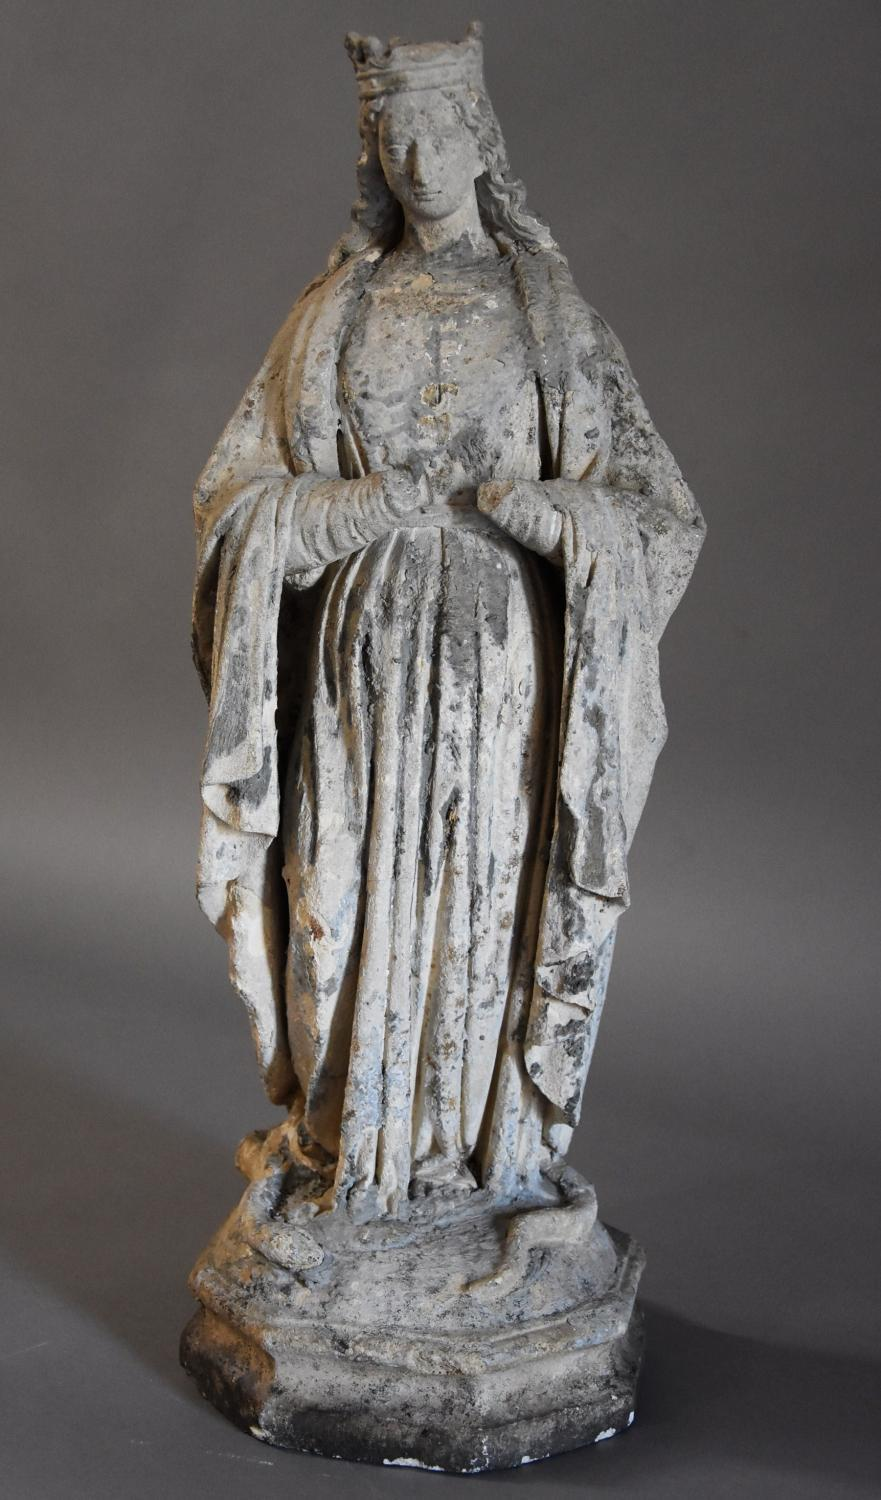 French limestone sculpture of Virgin Mary